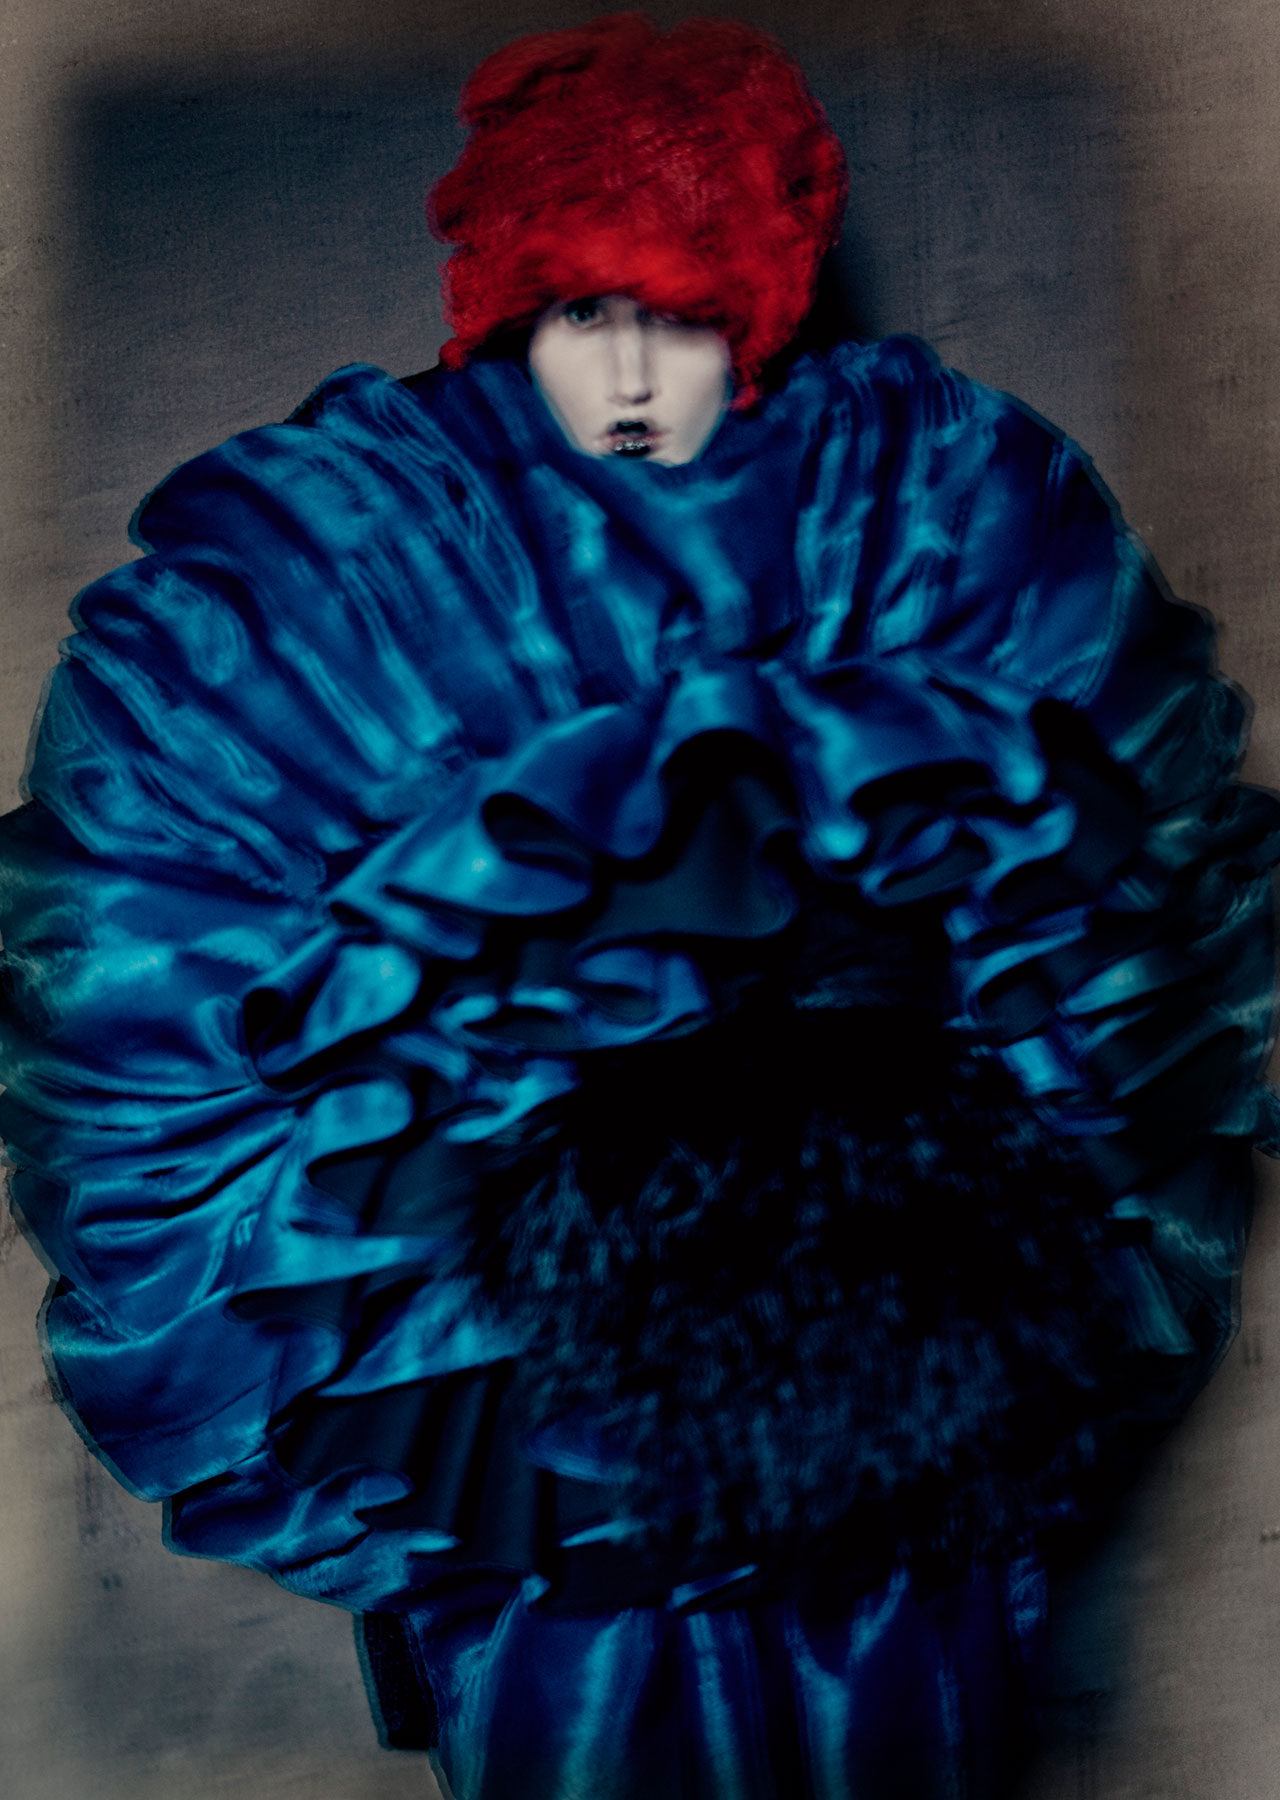 Rei Kawakubo (Japanese, born 1942) for Comme des Garçons (Japanese, founded 1969). Blue Witch, spring/summer 2016.Photograph by © Paolo Roversi; Courtesy of The Metropolitan Museum of Art